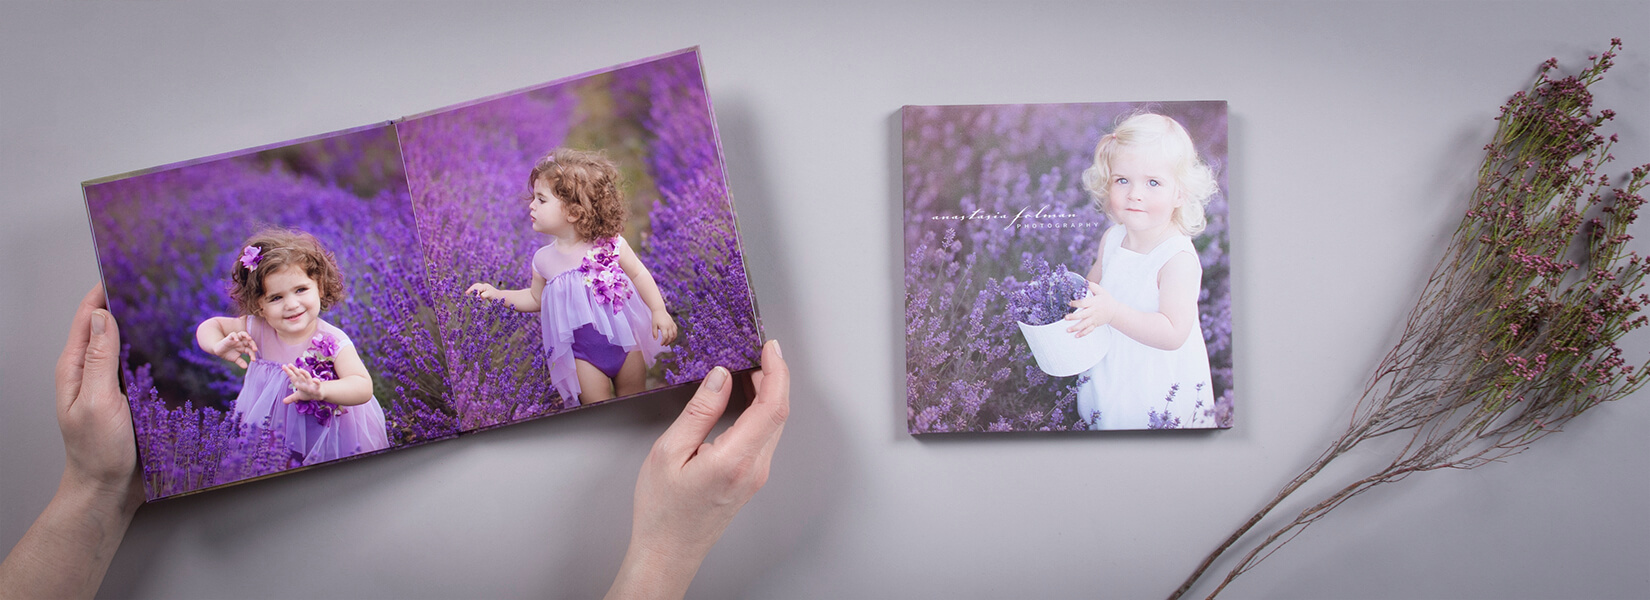 LiteAlbum HD is perfect voor newborn fotografie